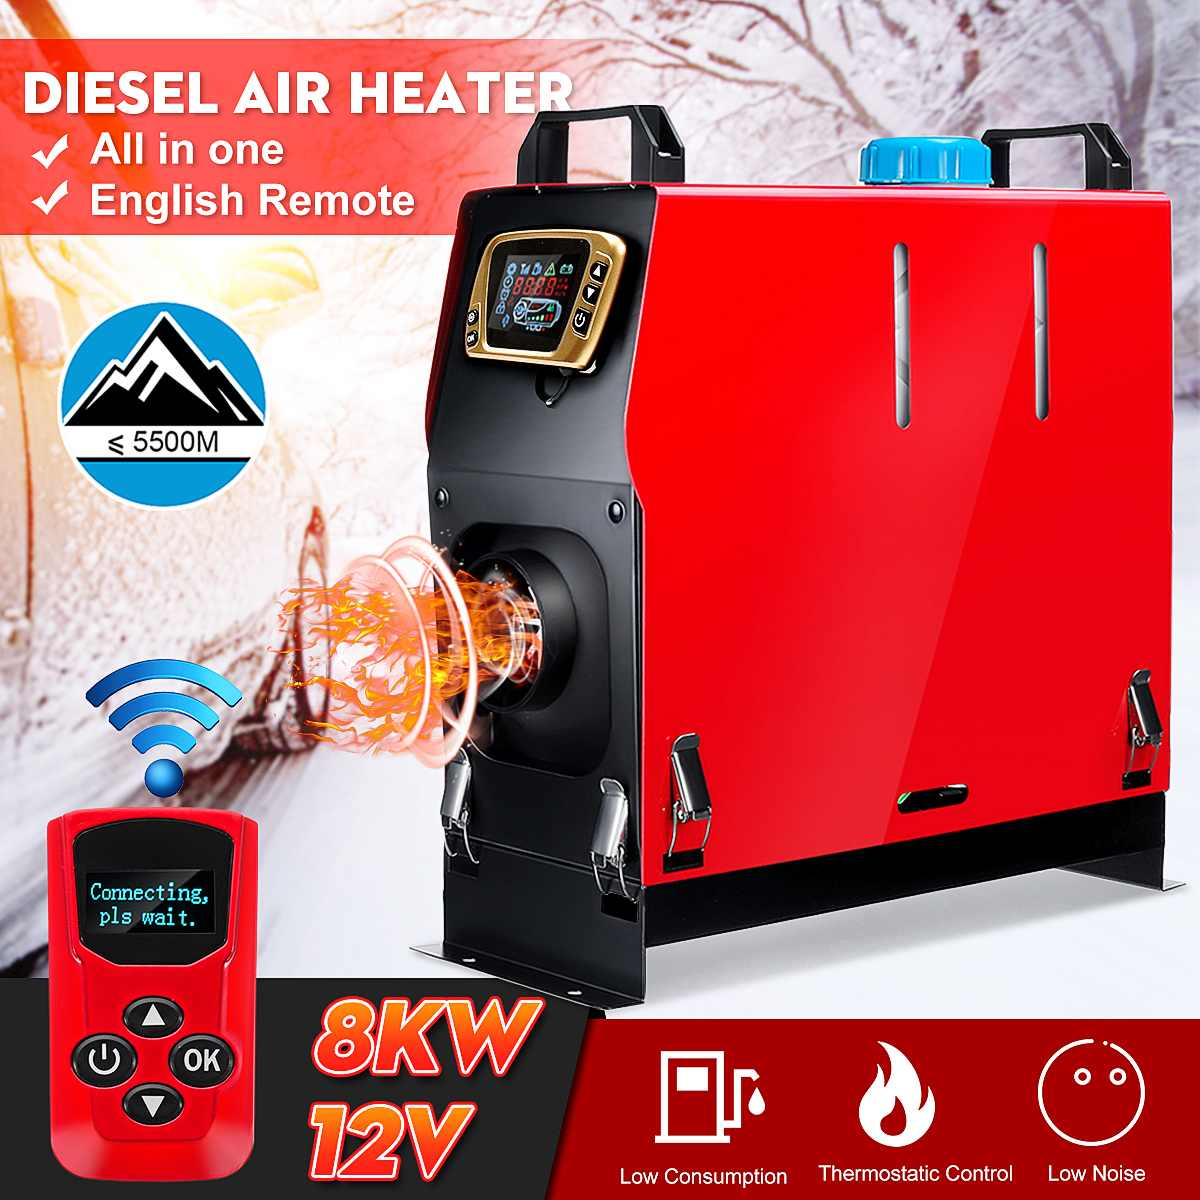 Detachable 8KW 12V Portable Heater All in One Fuel Air Parking Warmer + Golden LCD Switch+Enhlish Remote For Bus Truck Boat VanDetachable 8KW 12V Portable Heater All in One Fuel Air Parking Warmer + Golden LCD Switch+Enhlish Remote For Bus Truck Boat Van